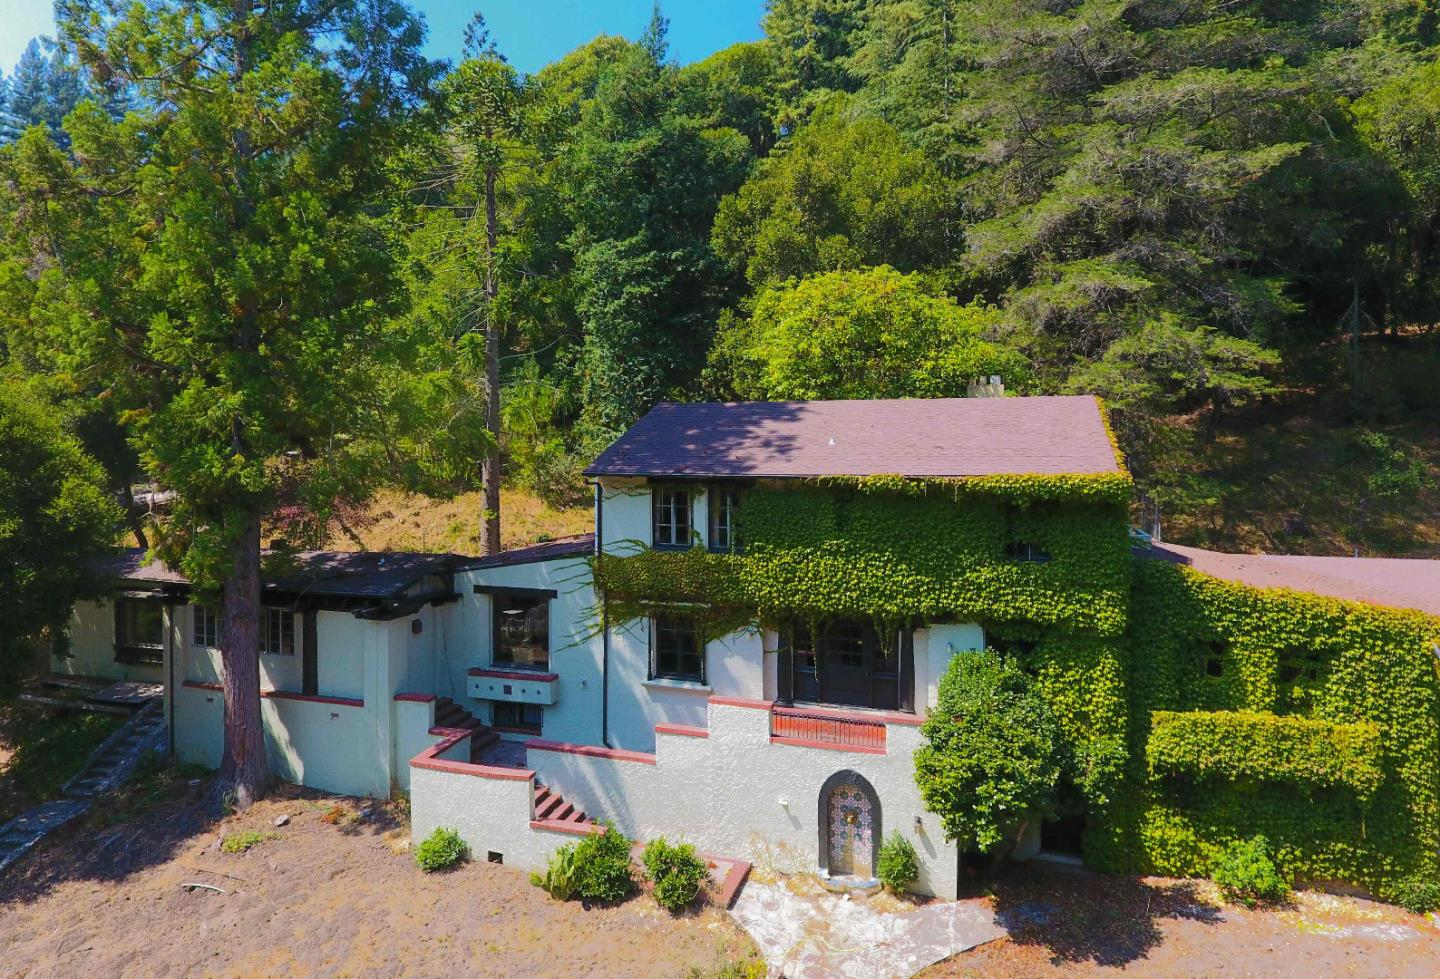 "One-of-a-kind 12.8 acre estate on Branciforte Creek featuring the original 7 BR 6000+SF Mediterranean villa ""Casa de Montgomery"" built in 1932, with attached guest unit plus an 8000+SF wing built in 1972 that added 17 BR with commercial kitchen, dining hall, high ceilings & ADA hallways, for total 13,955 SF, 26 BR, 6 full baths & 14 half baths. There are engineering, plans & former application to demo everything & rebuild as a 100-bed senior assisted living facility, OR SIMPLY UPDATE THE VILLA AND RE-ENGINEER THE 8000+SF WING FOR GIANT HOME SHOP, STUDIO OR 30+CAR/TOY BARN! Other Level 5 Use possibilities include renovating in place as a school, religious or retreat center, corporate compound or subsidized housing. Main water source is well with poly tanks. Also has water rights & pumps at creek that once fed a large tank for the fire sprinkler & irrigation systems, plus 5 dry ponds from a now-defunct treatment system that can become scenic water features once a new system is installed."